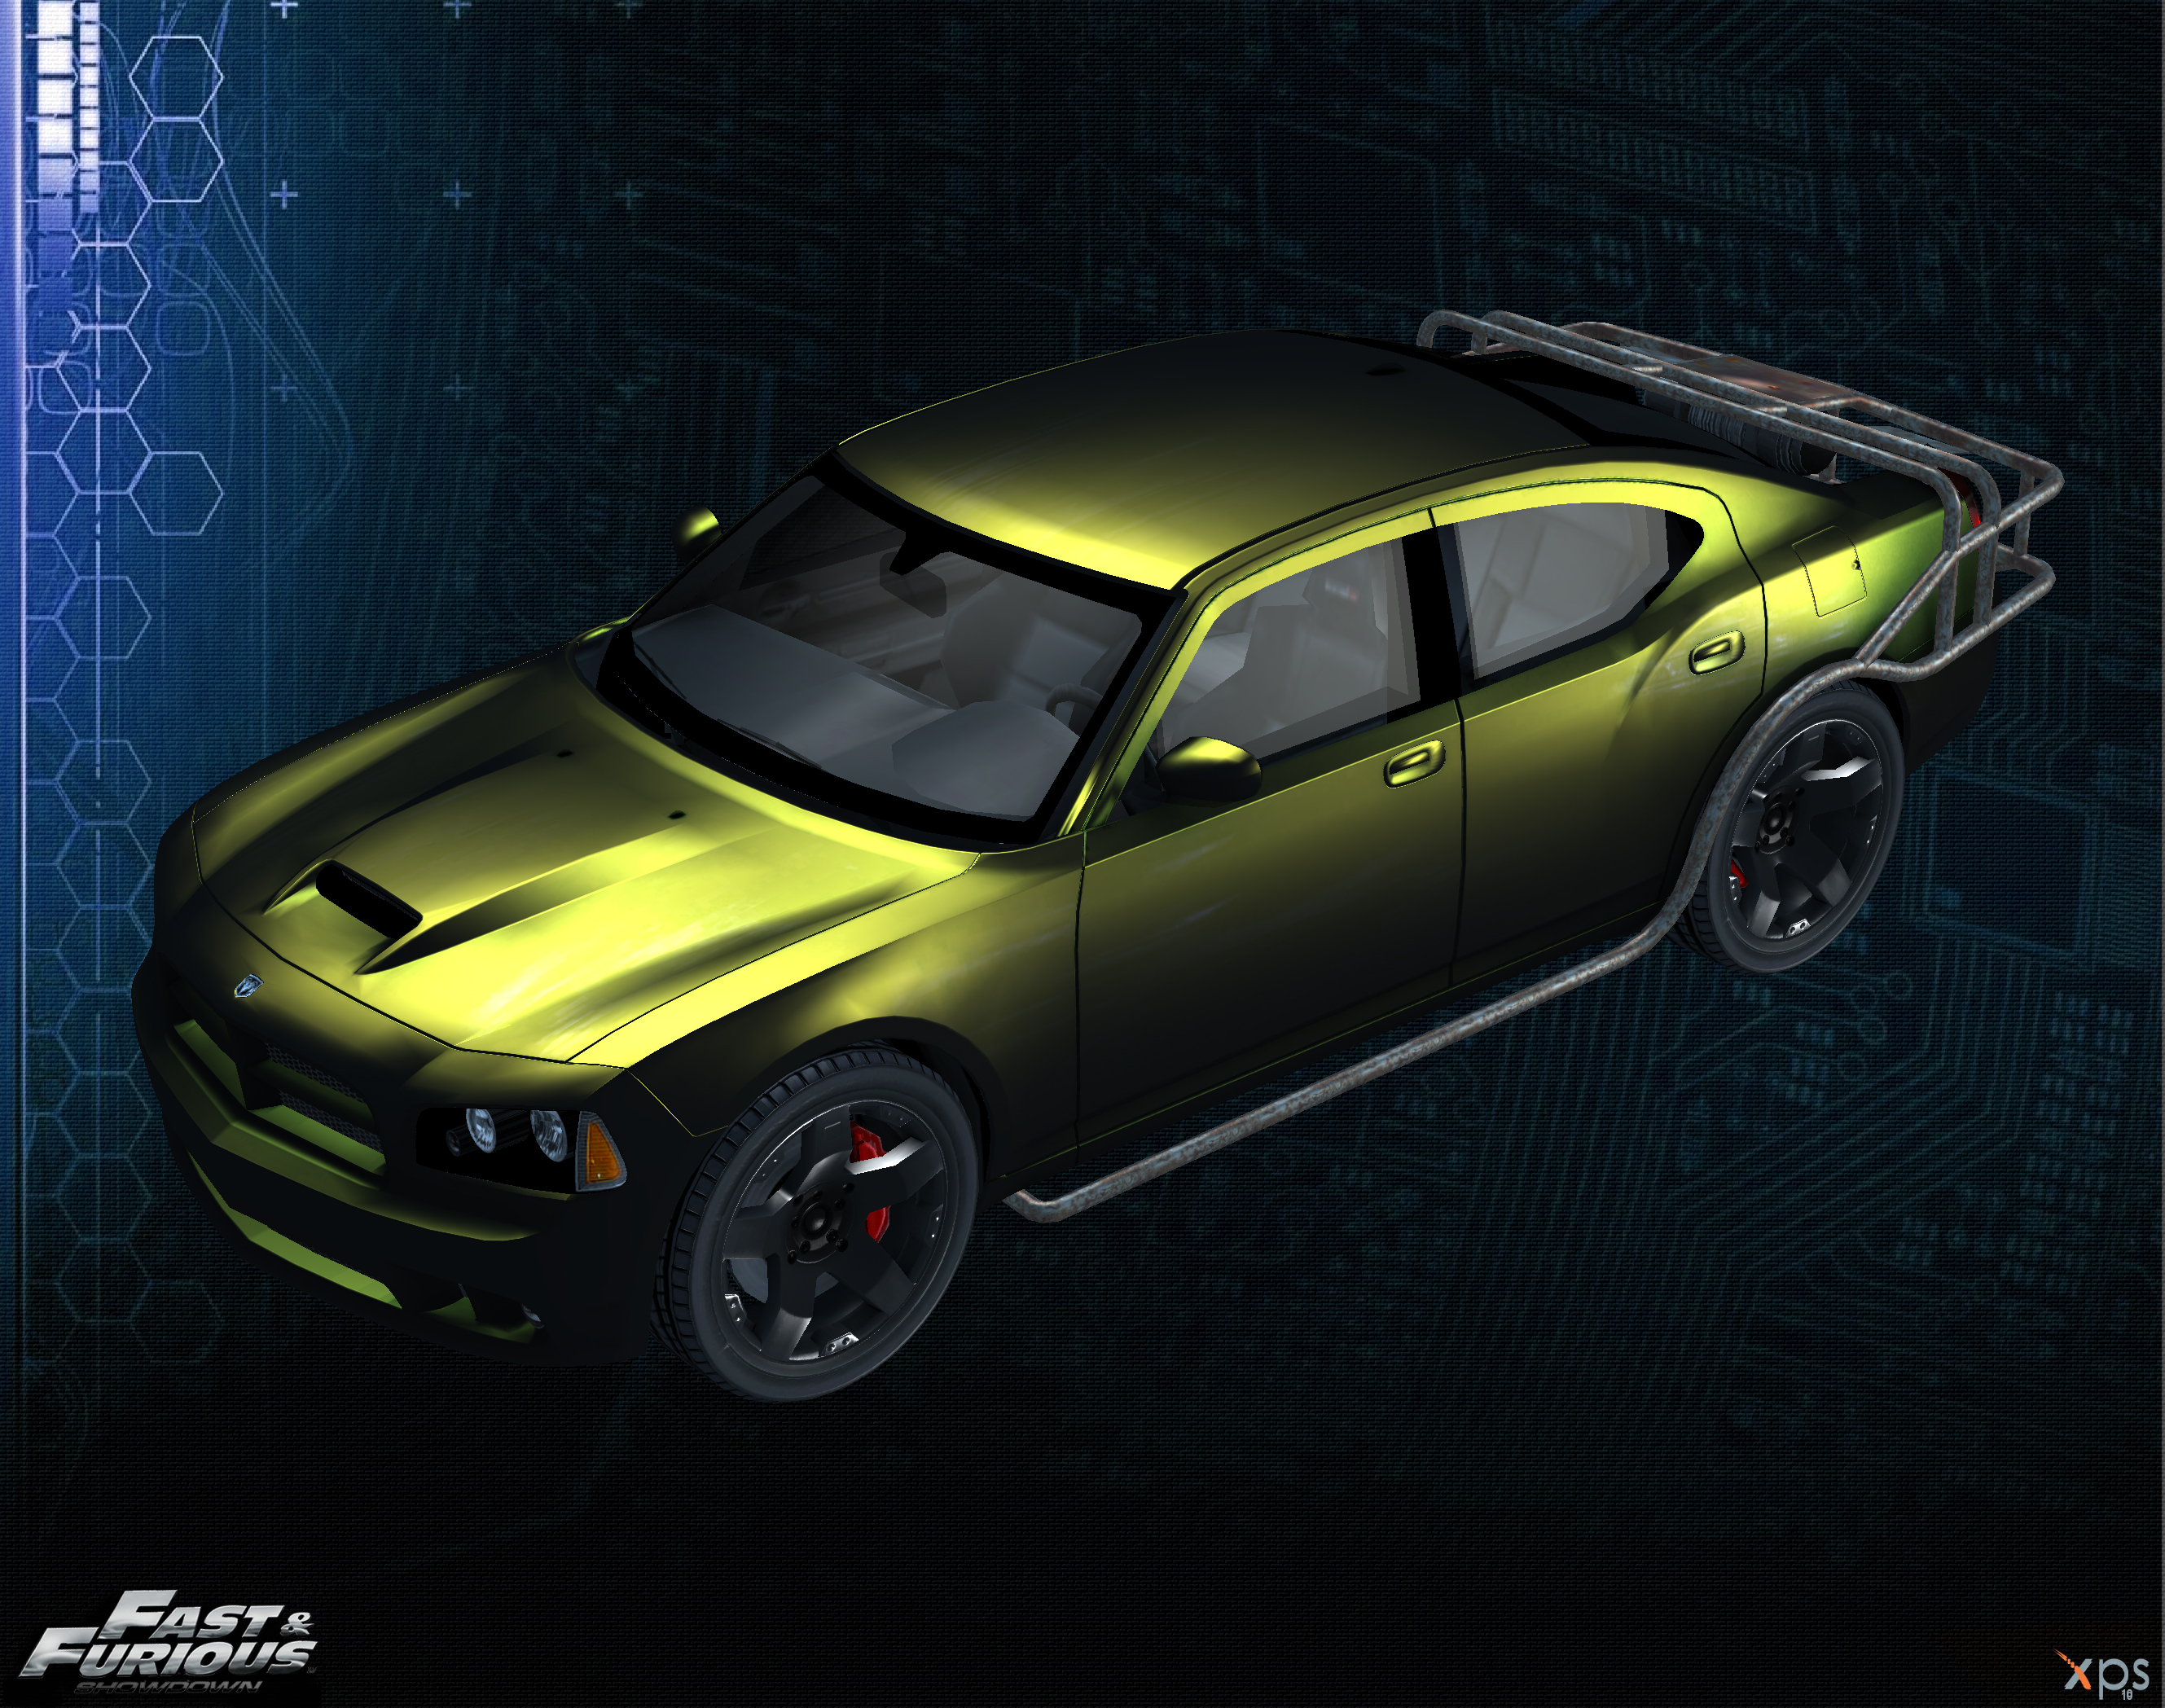 Dodge charger 2010 vault edition f f s by goreface13 on deviantart dodge charger 2010 vault edition f f s by goreface13 sciox Image collections